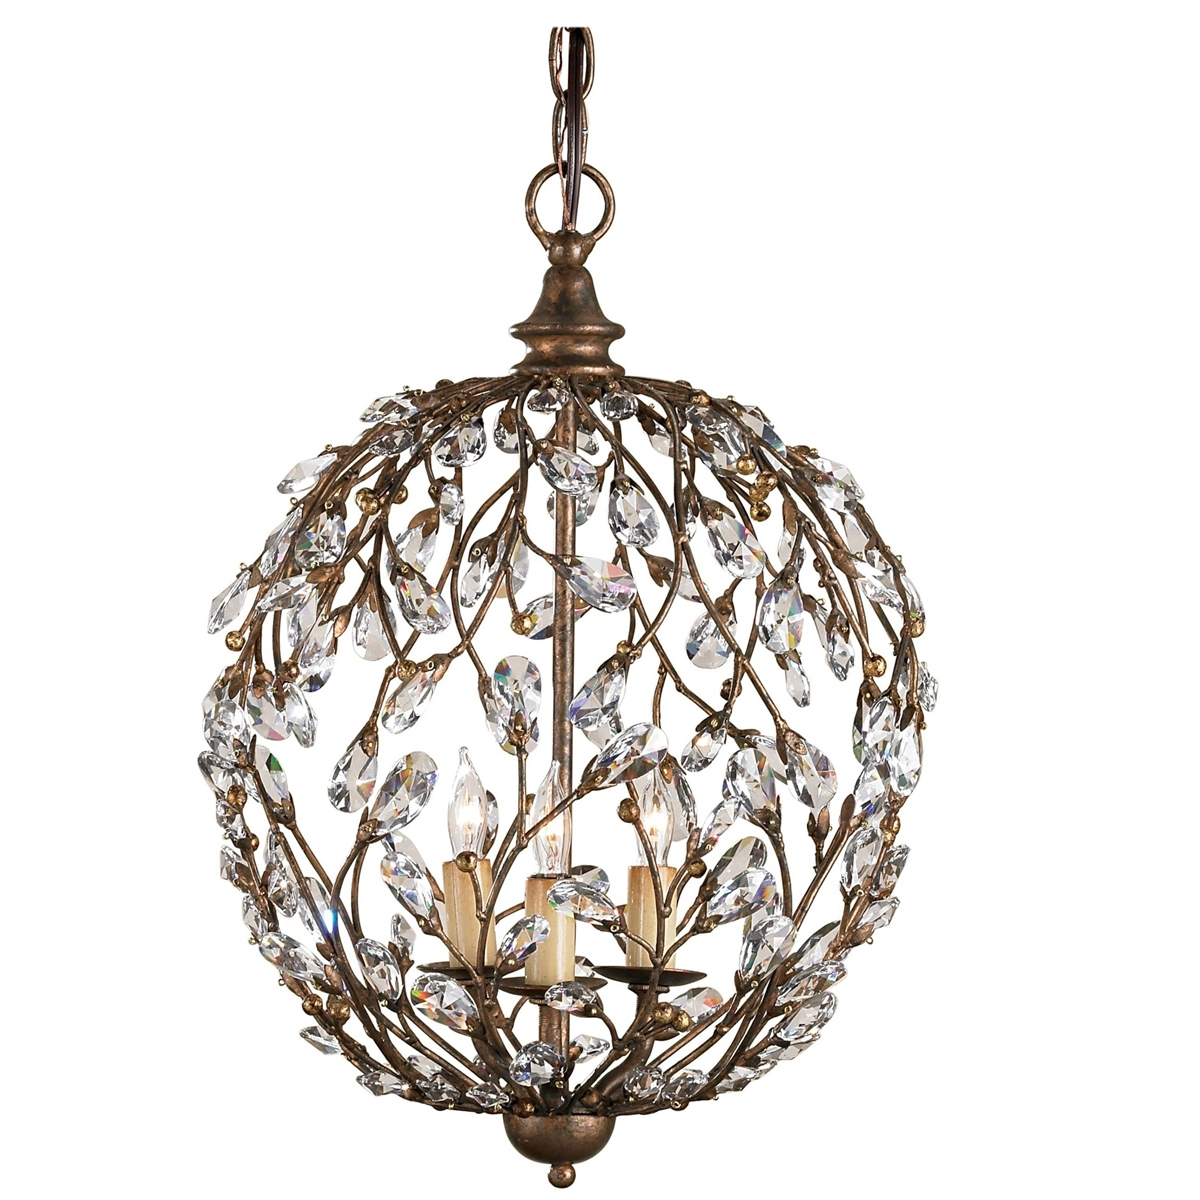 Chandelier Amazing Crystal Globe Chandelier Large Crystal Throughout Globe Chandeliers (Image 4 of 15)